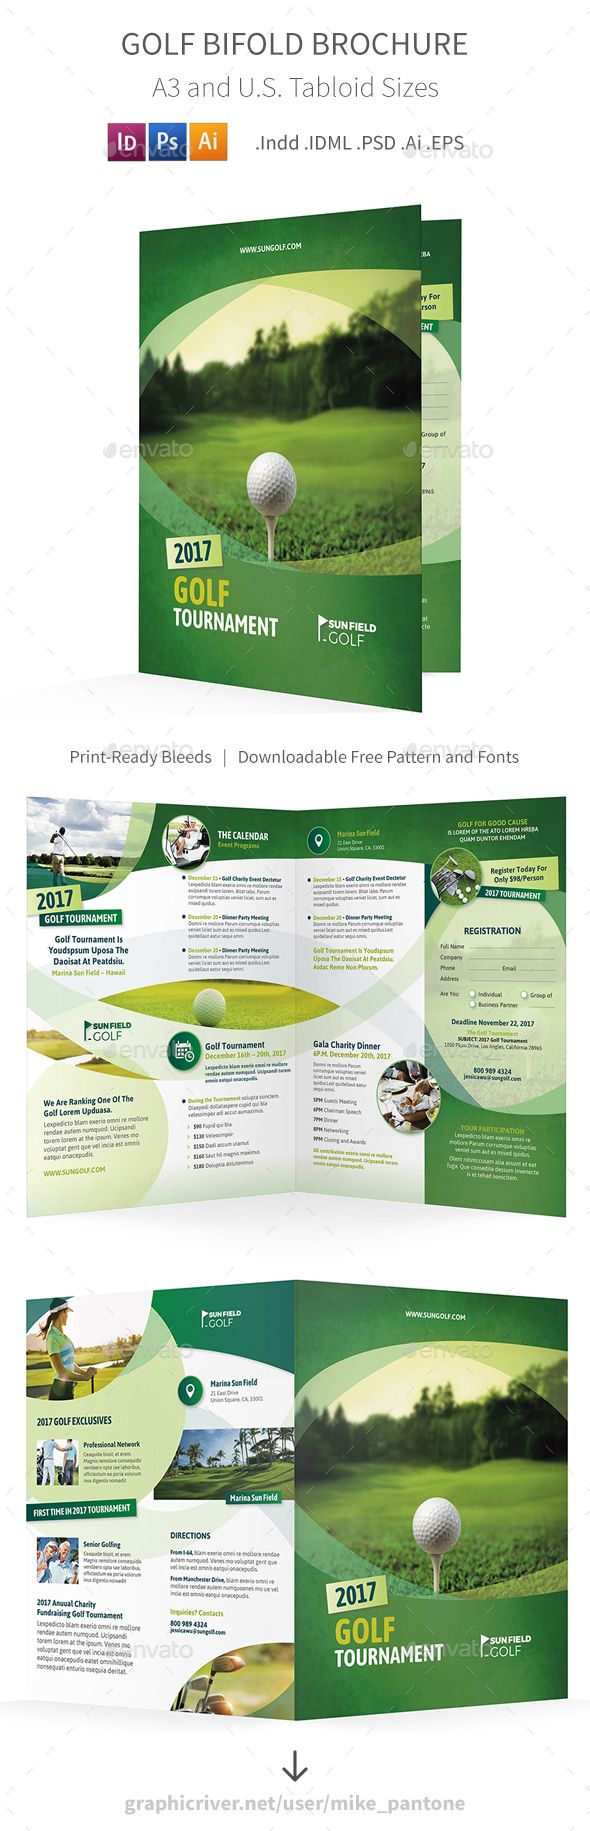 Golf Bifold / Halffold Brochure 7 olf Bifold / Halffold Brochure 7 Clean and modern bi-fold brochure for your golf club, tournament, guide…  Features:      Tabloid Size 11×17 folded into 8.5×11, or A3 folded into A4 bi-fold brochure     Photoshop CMYK 300 dpi, Indesign, and Illustrator formats .Psd .Indd .IDML .Ai .EPS